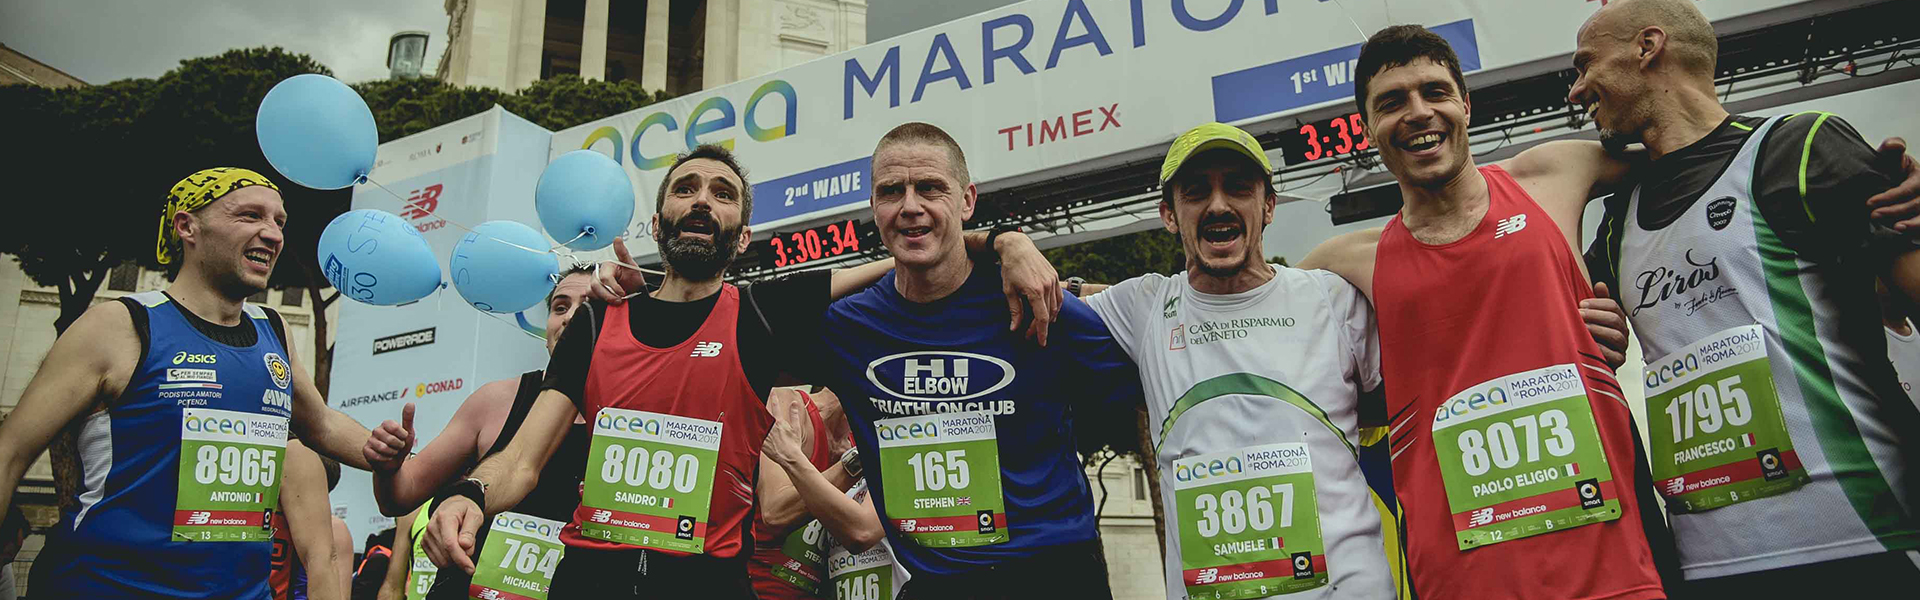 Daniele Caimmi is also listed among the 145 international pacers of Acea Run Rome The Marathon